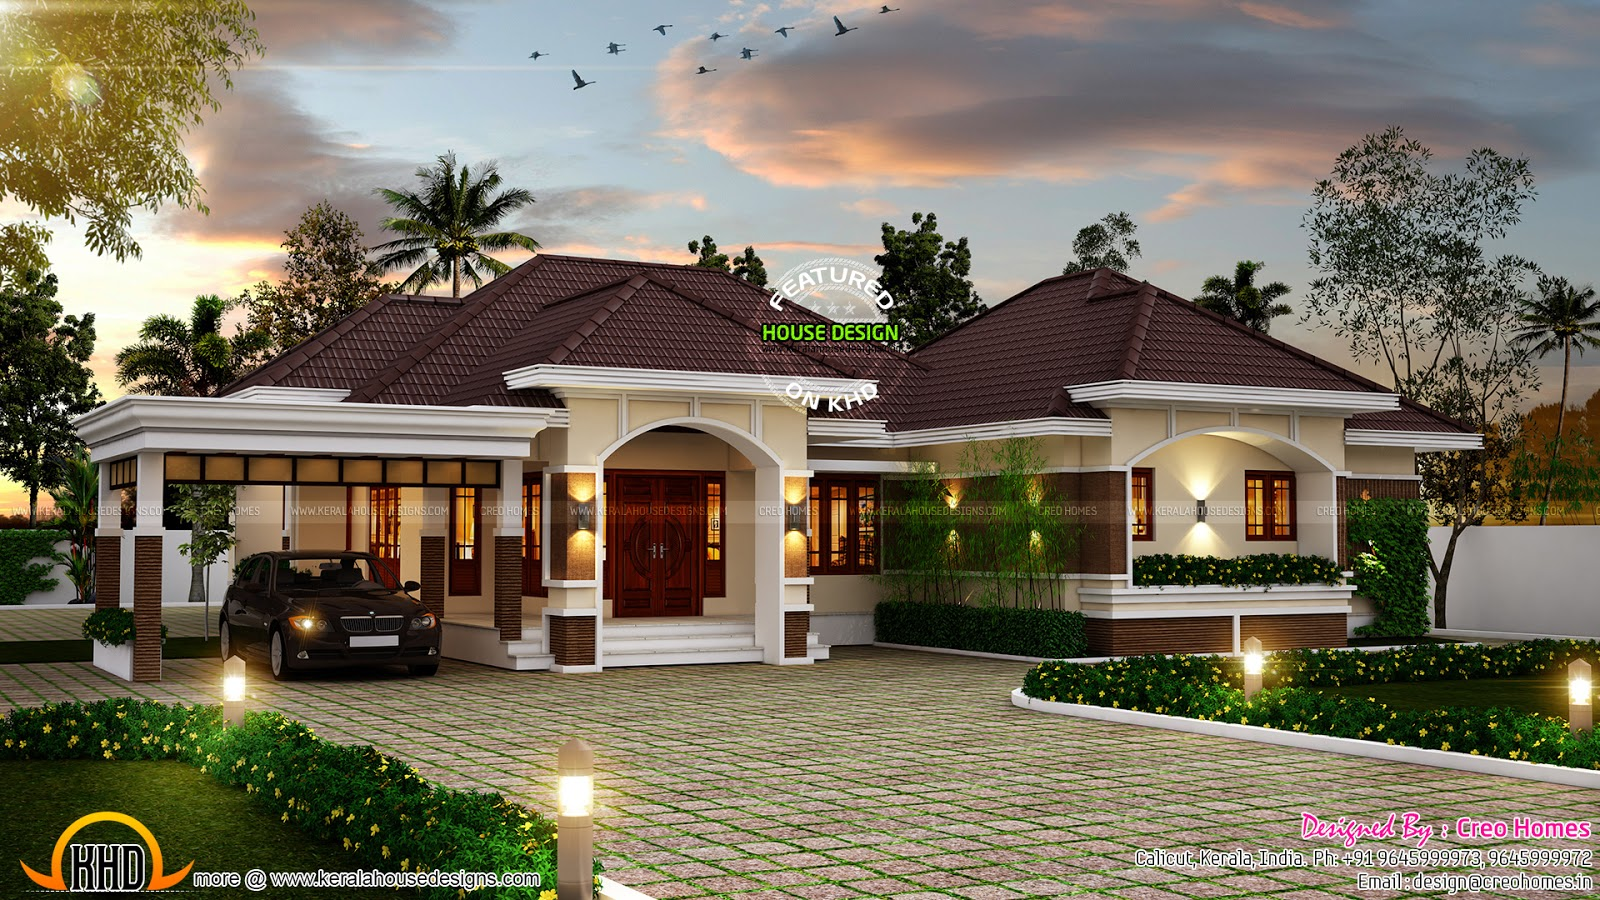 Outstanding bungalow in kerala kerala home design and Bungalo house